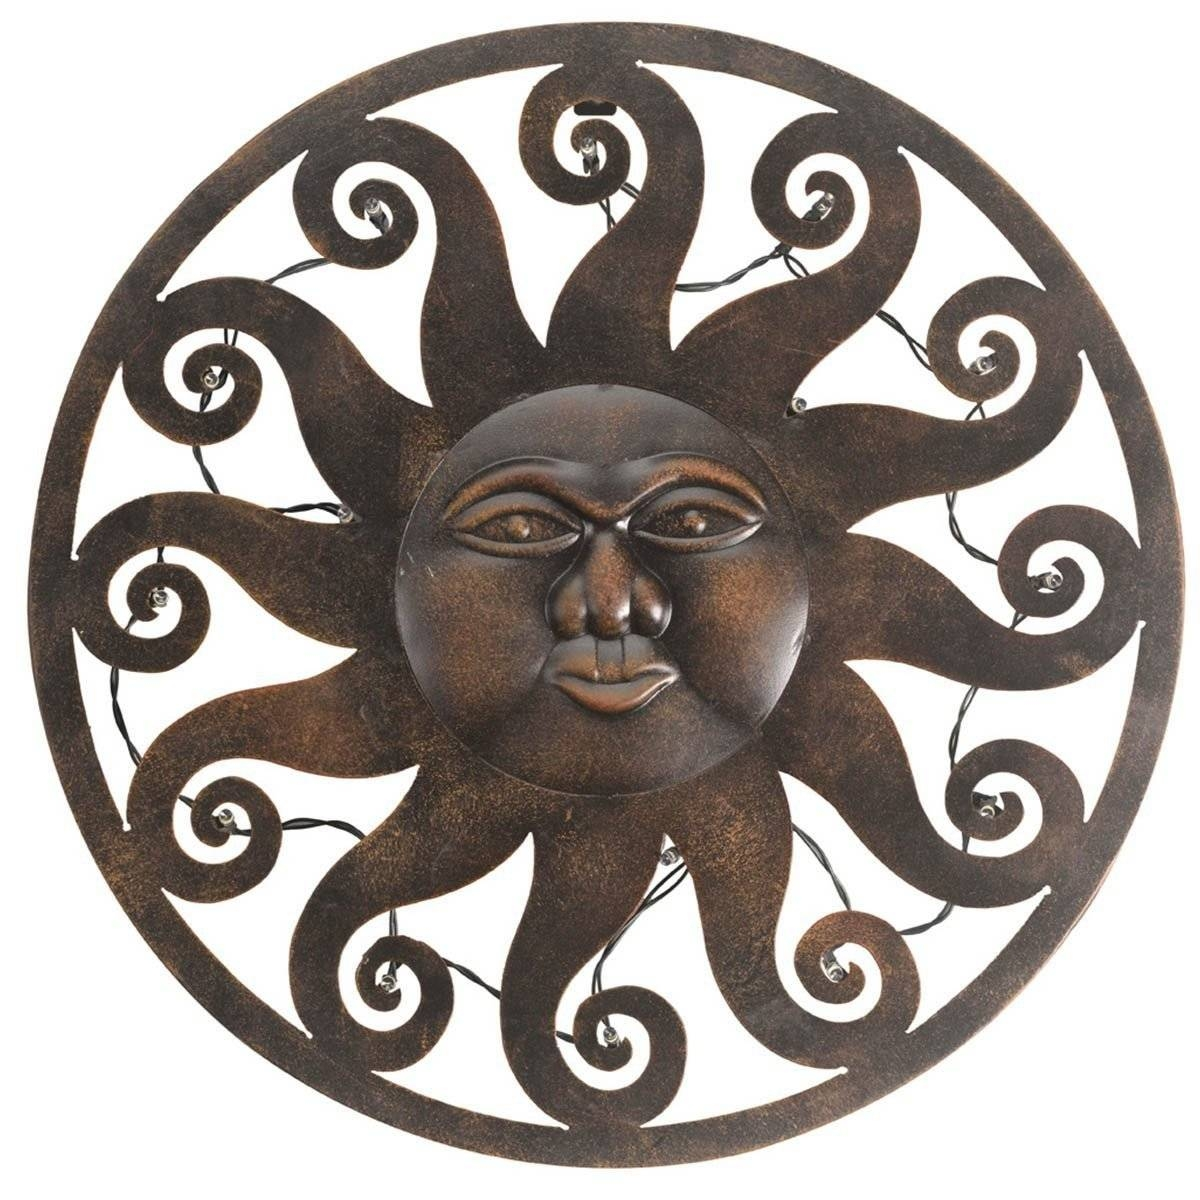 Celestial Sun Led Wall Art | Available At This Is It Stores Uk Intended For 2017 Garden Metal Wall Art (View 14 of 20)